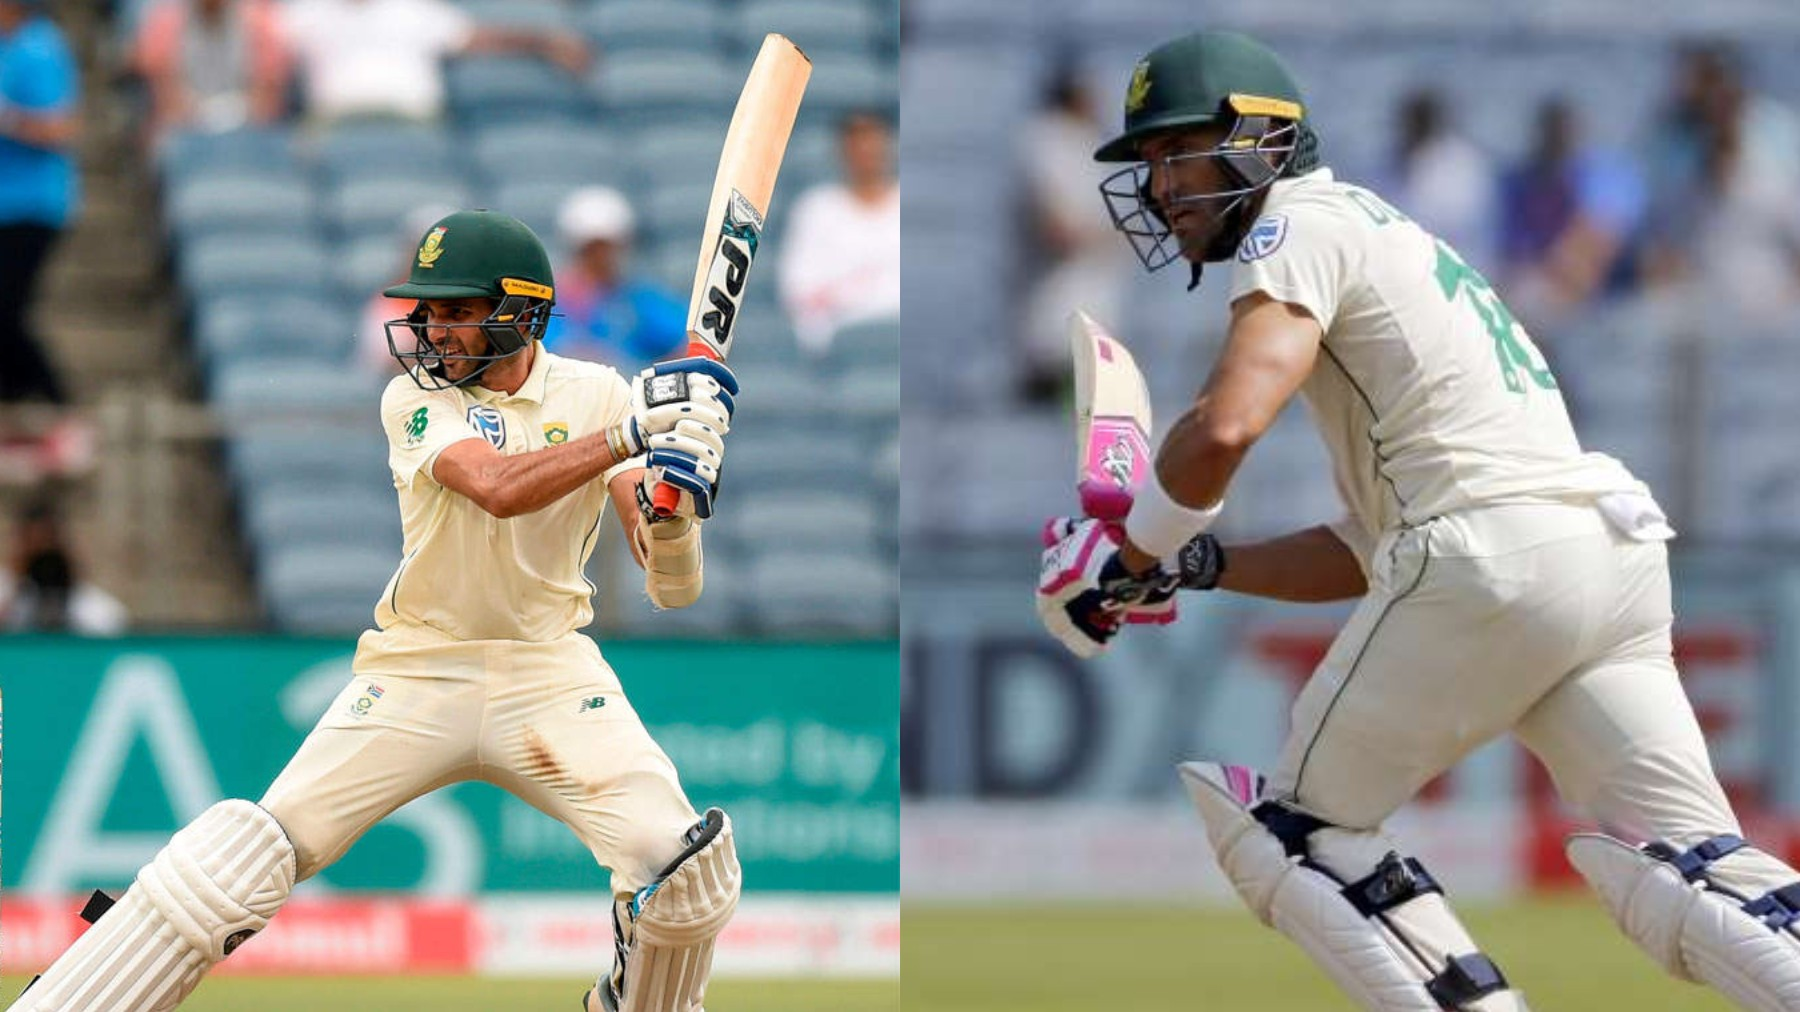 IND v SA 2019: 2nd Test, Day 3- Maharaj, Du Plessis fifties help Proteas make 275; India leads by 326 runs